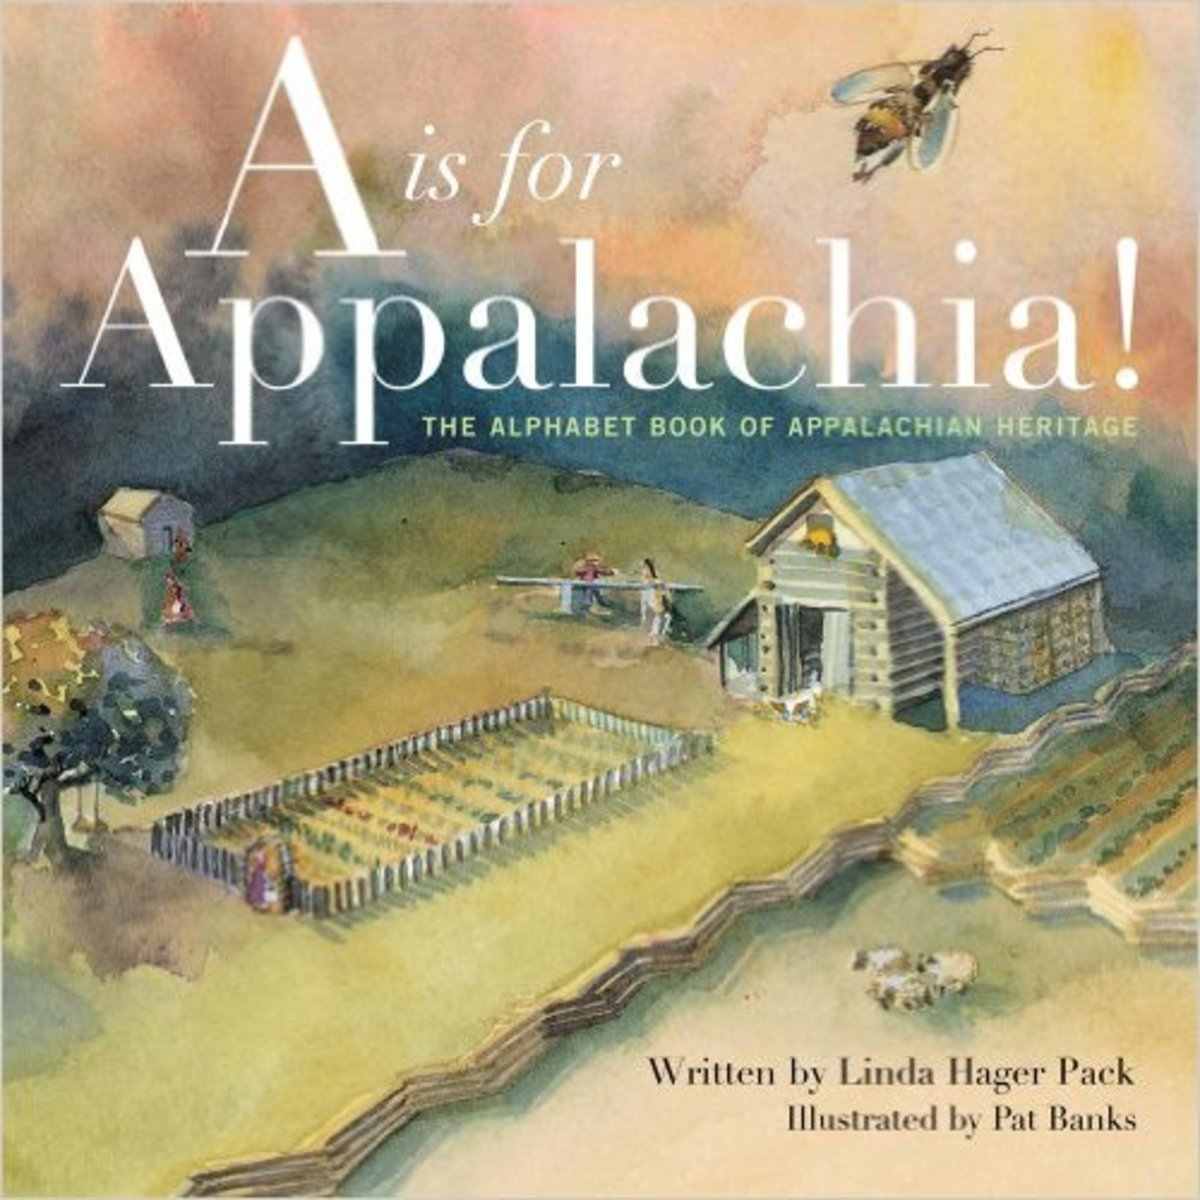 A is for Appalachia: The Alphabet Book of Appalachian Heritage by Linda Hager Pack